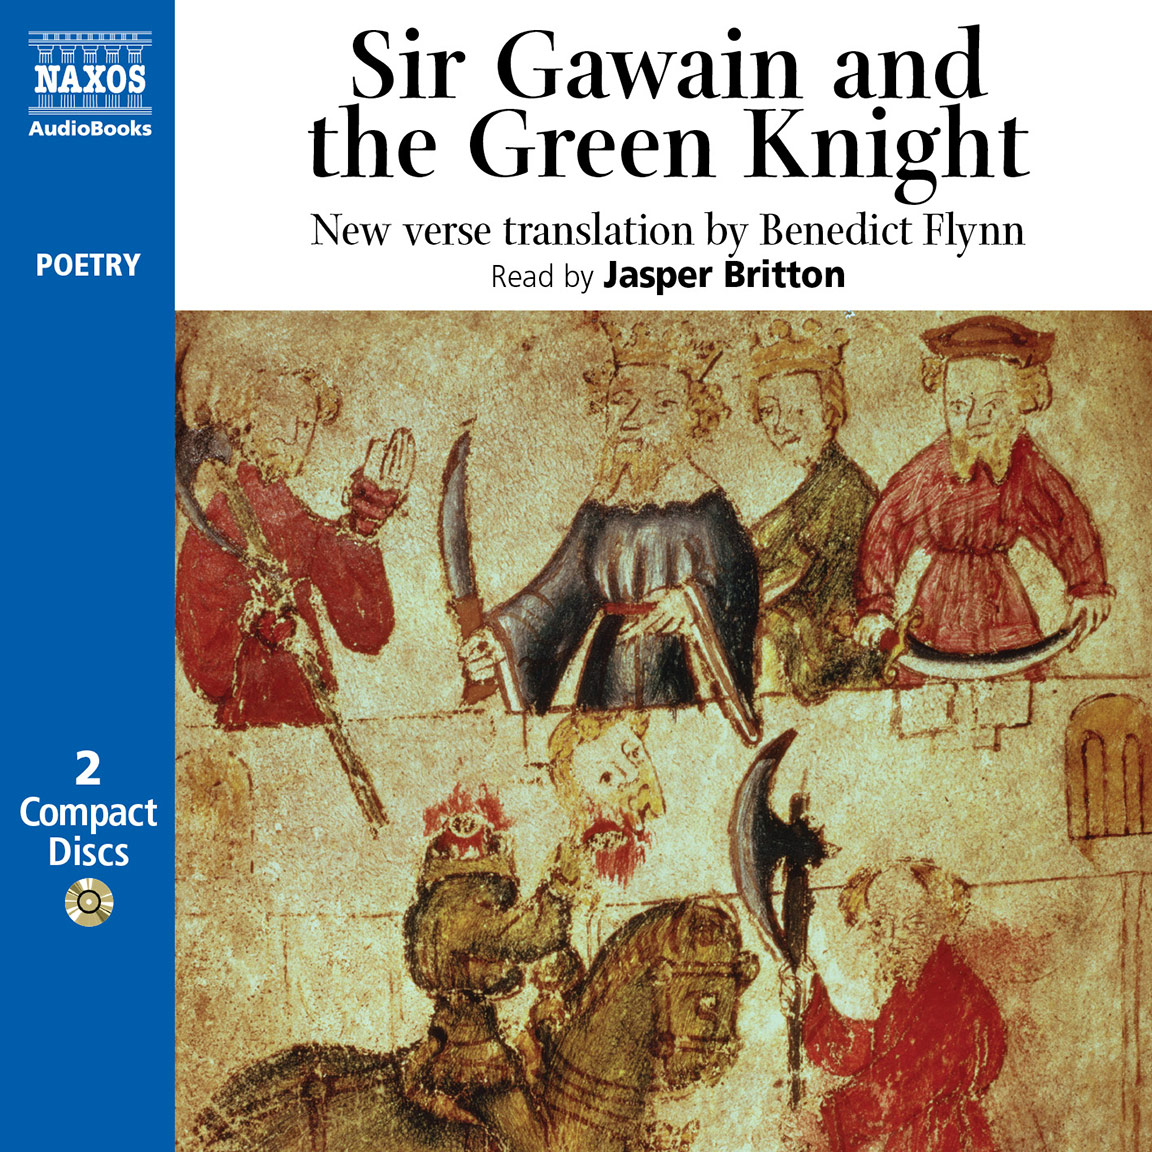 an analysis of the folk poem sir gawain and the green knight Sir gawain and the rest of king arthur's court are startled by a visit from a strange green knight the green knight challenges the court and sir gawain acce.